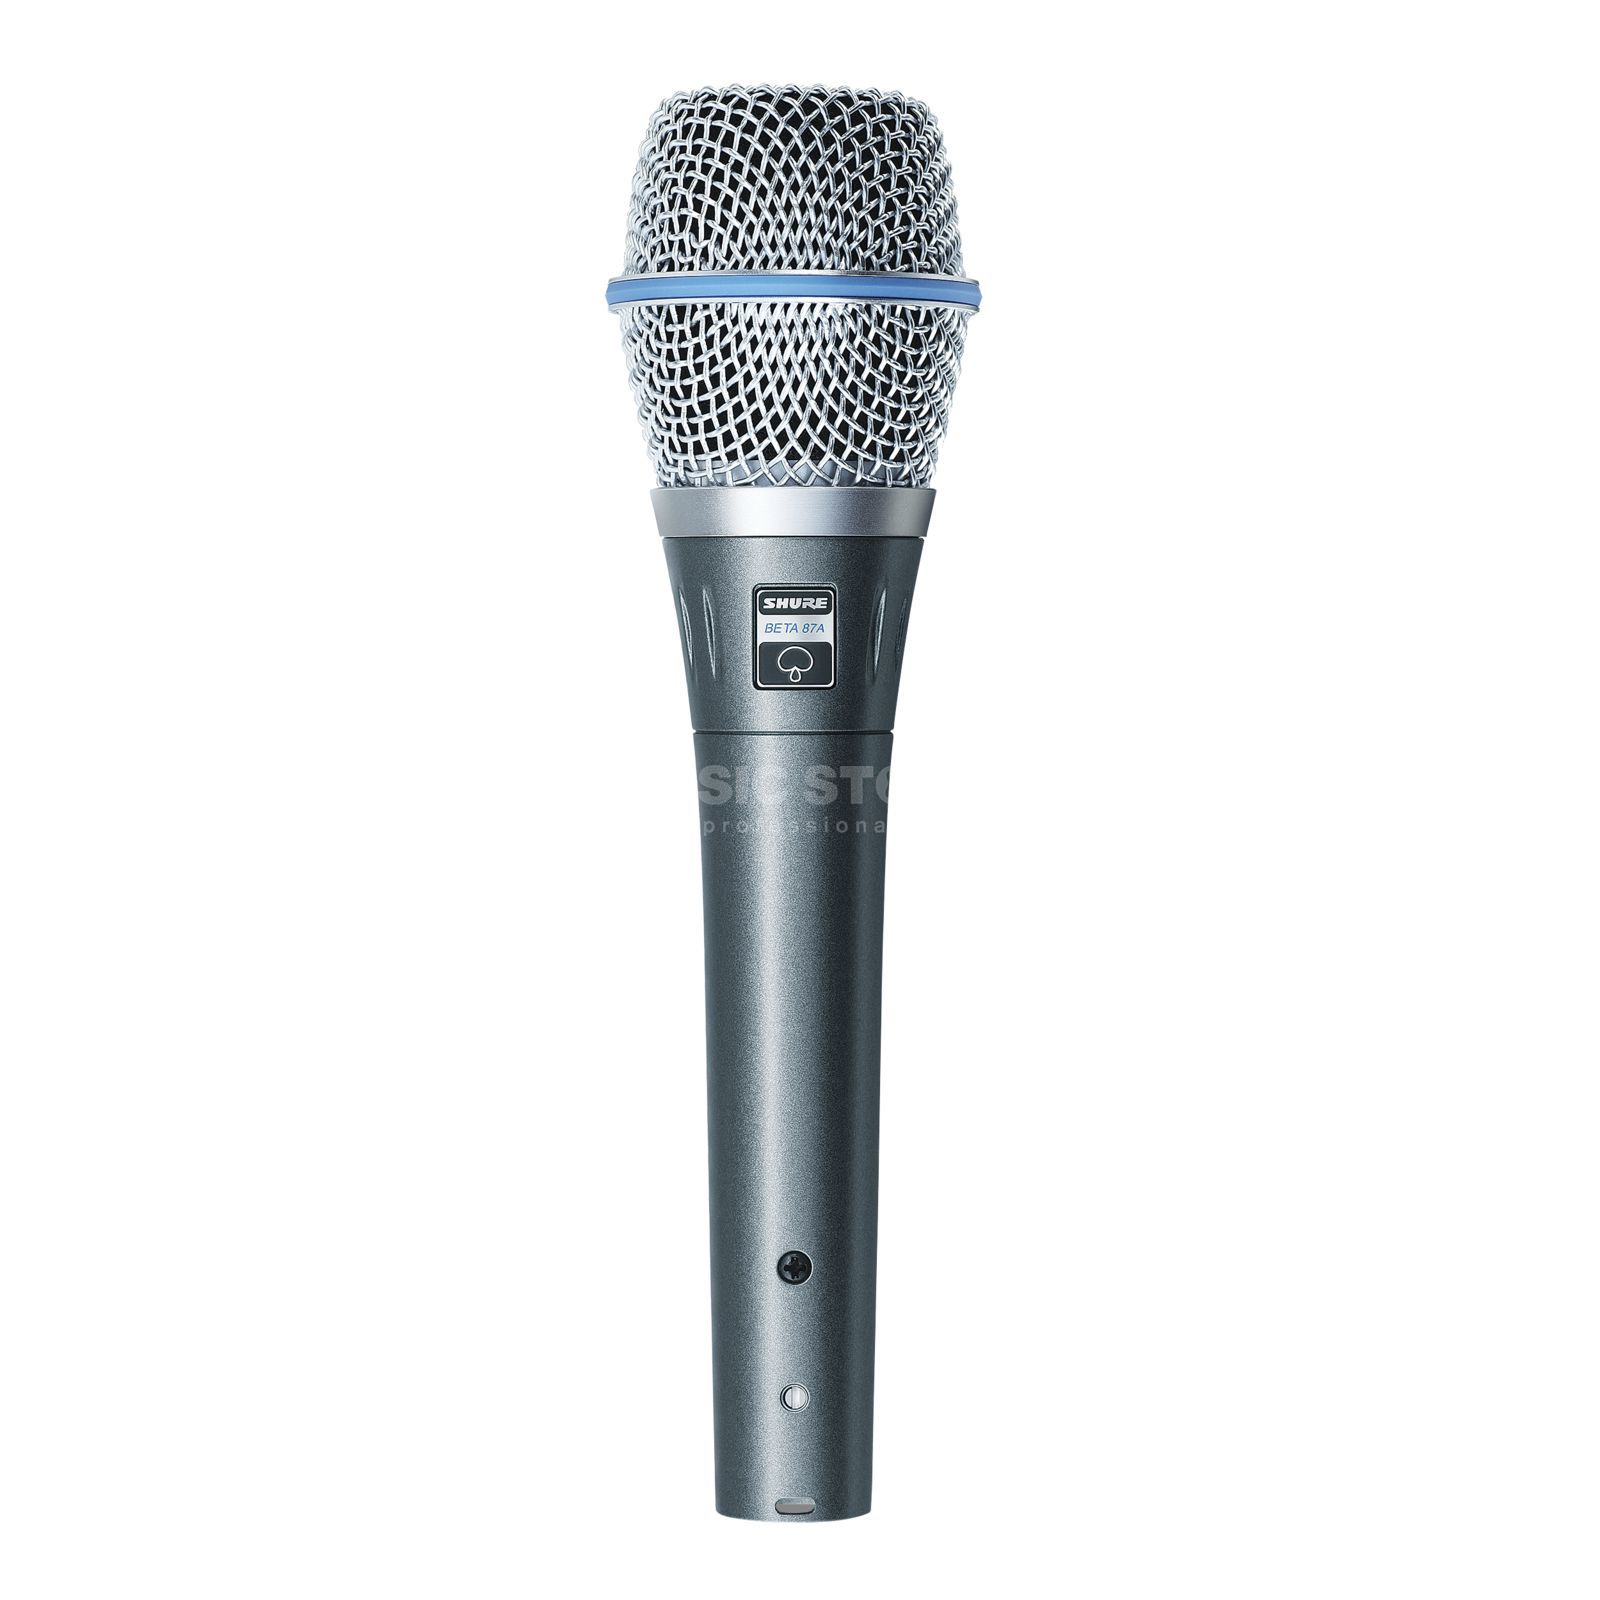 Shure Beta 87A Product Image